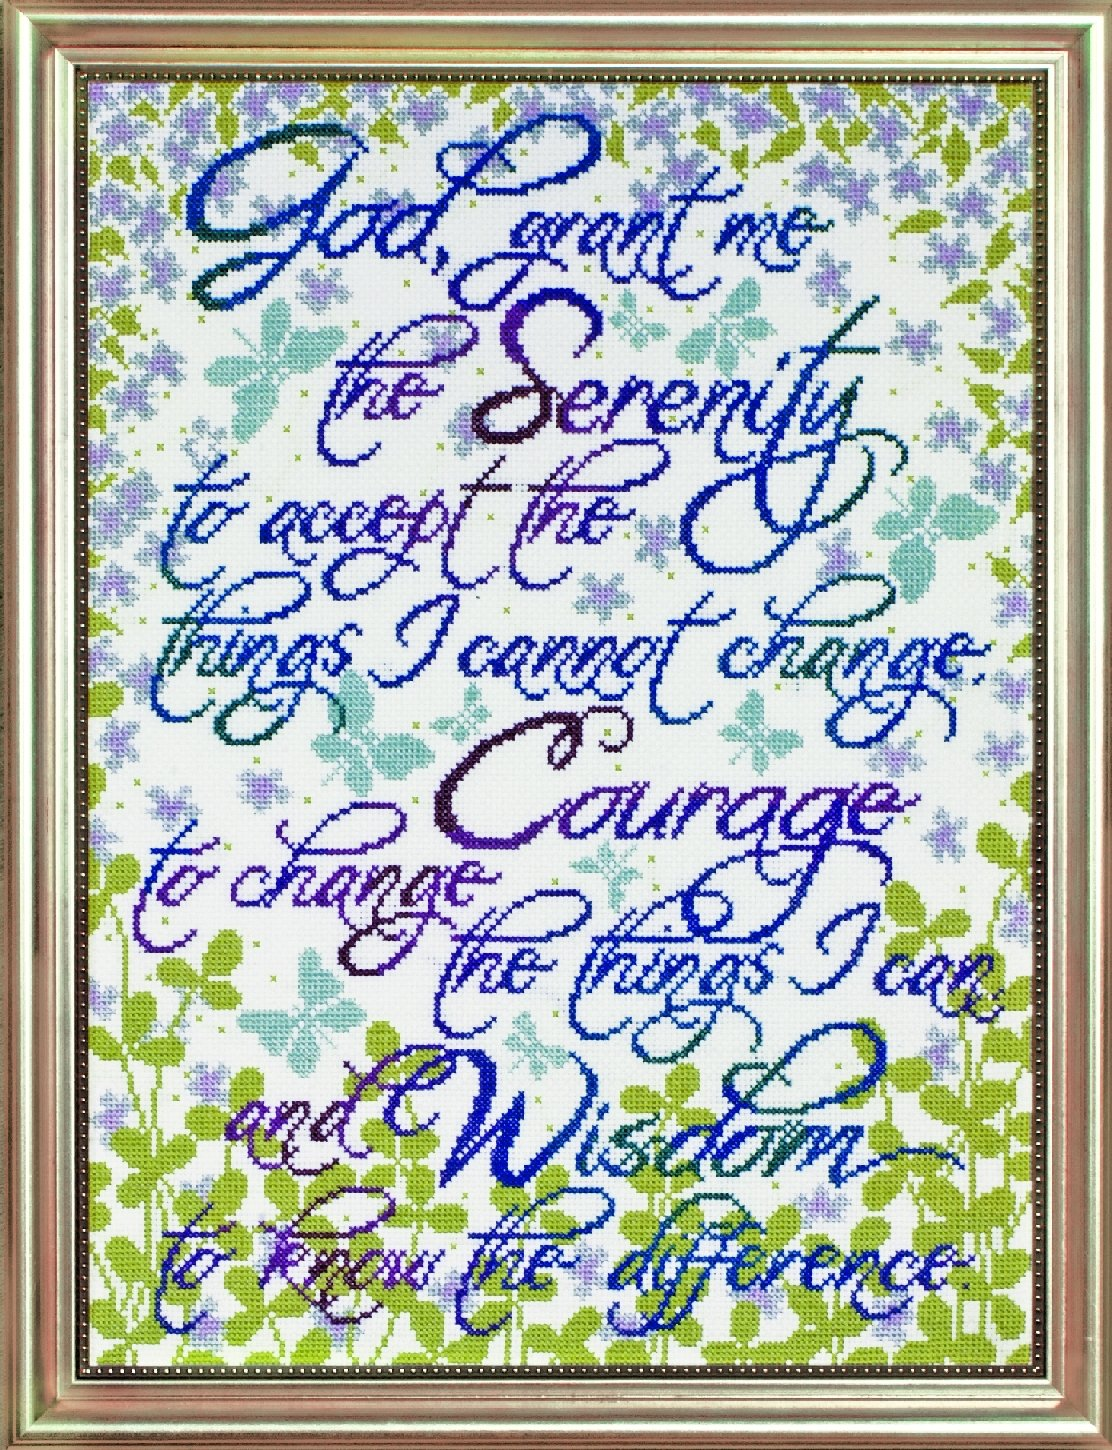 Tobin DW2814 14 Count Counted Cross Stitch Kit Serenity Prayer Floral 12 by 16-Inch